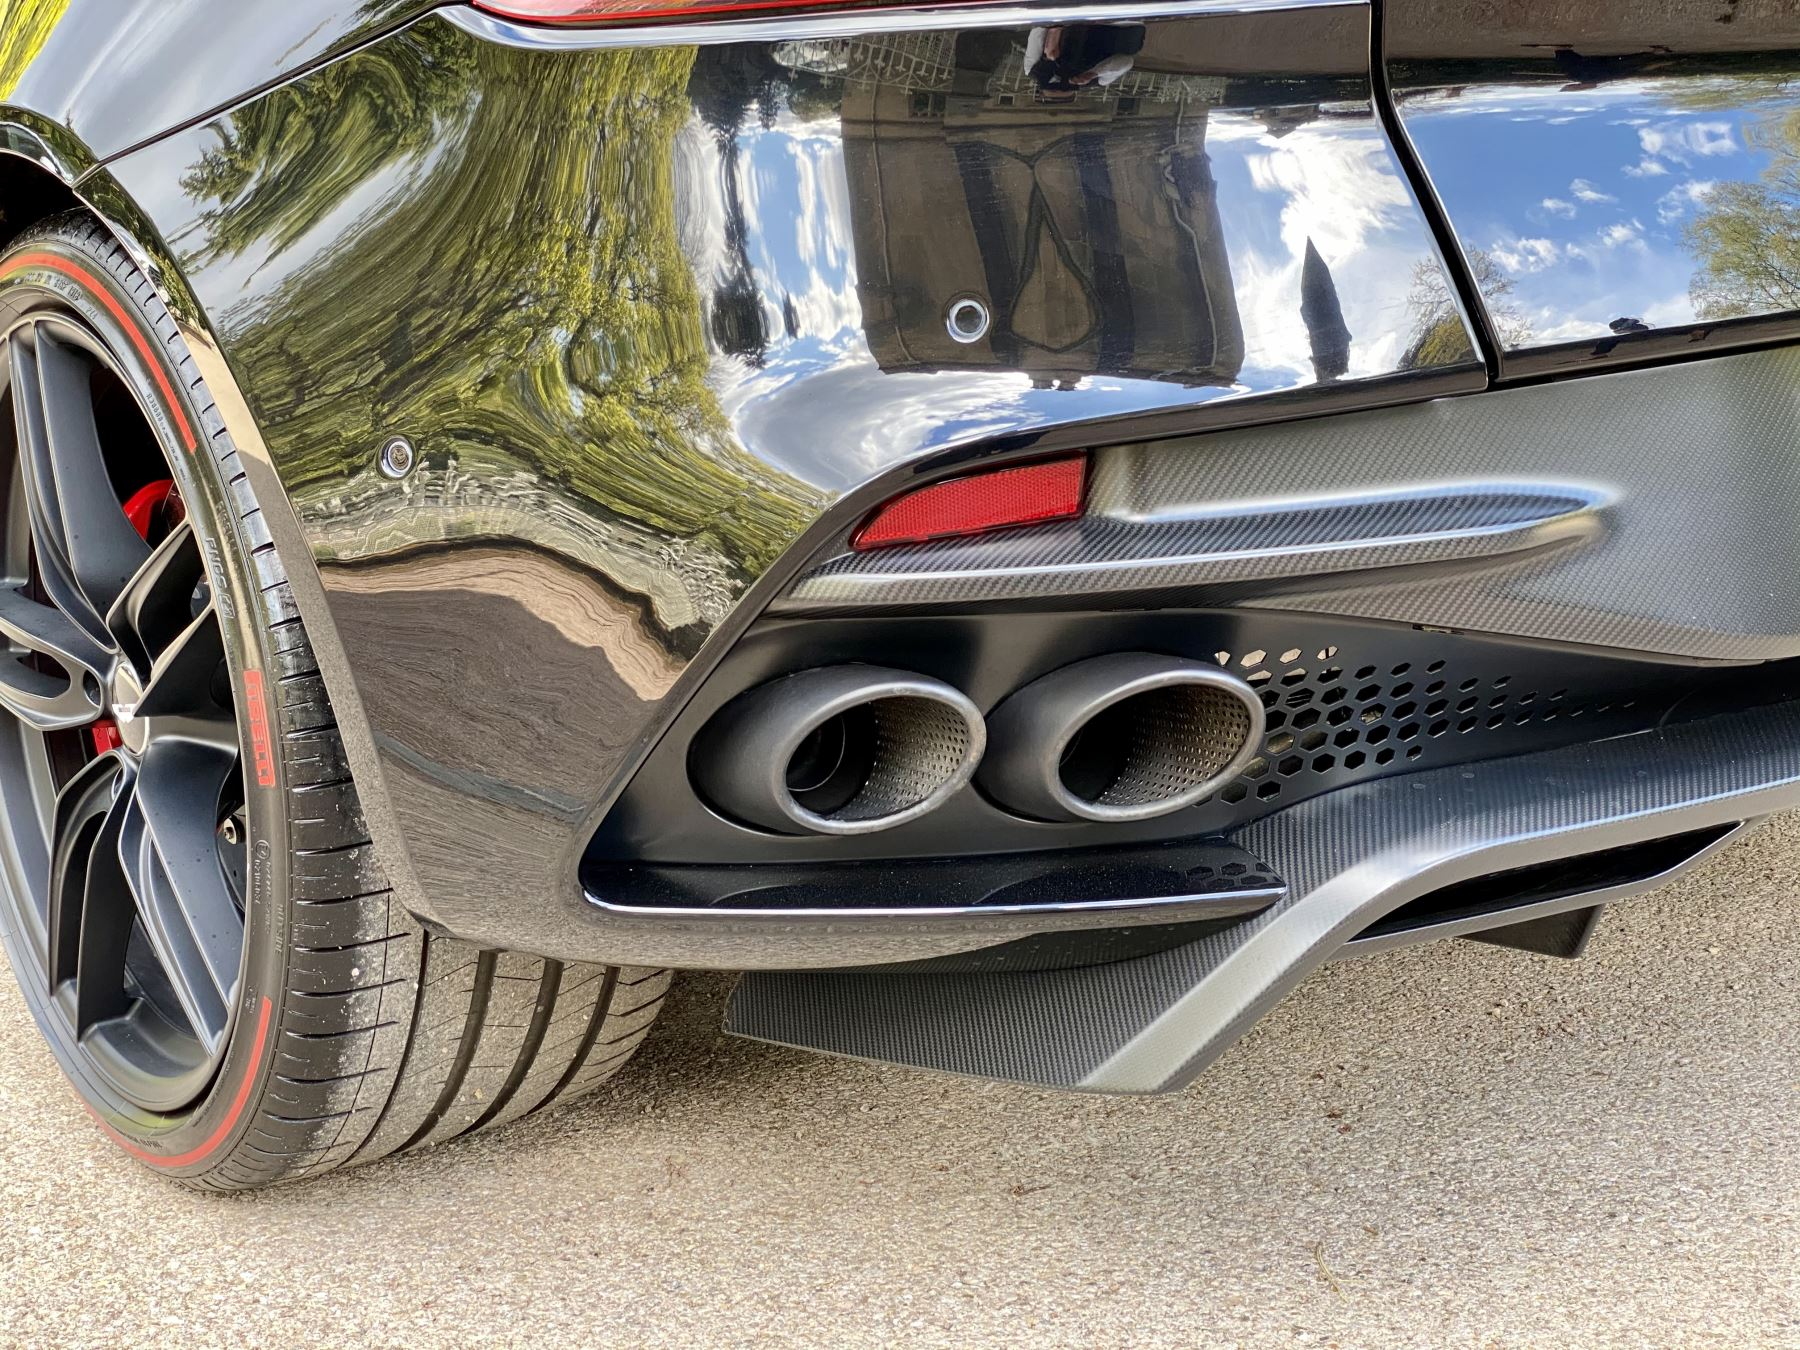 Aston Martin DBS V12 Superleggera 2dr Touchtronic Tag Edition  1 of 50 produced worldwide  image 14